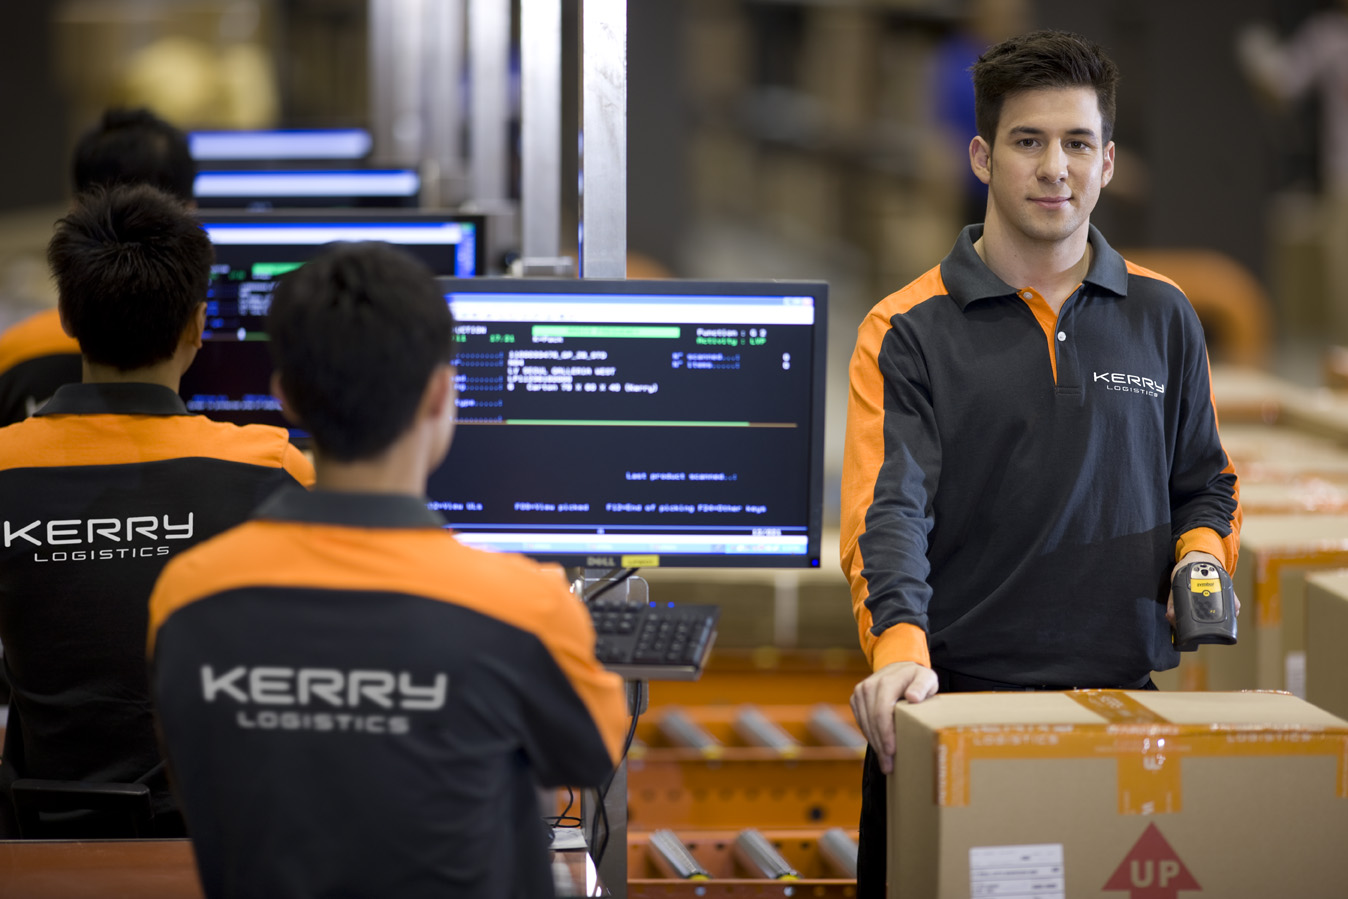 New Poland office for Kerry Logistics